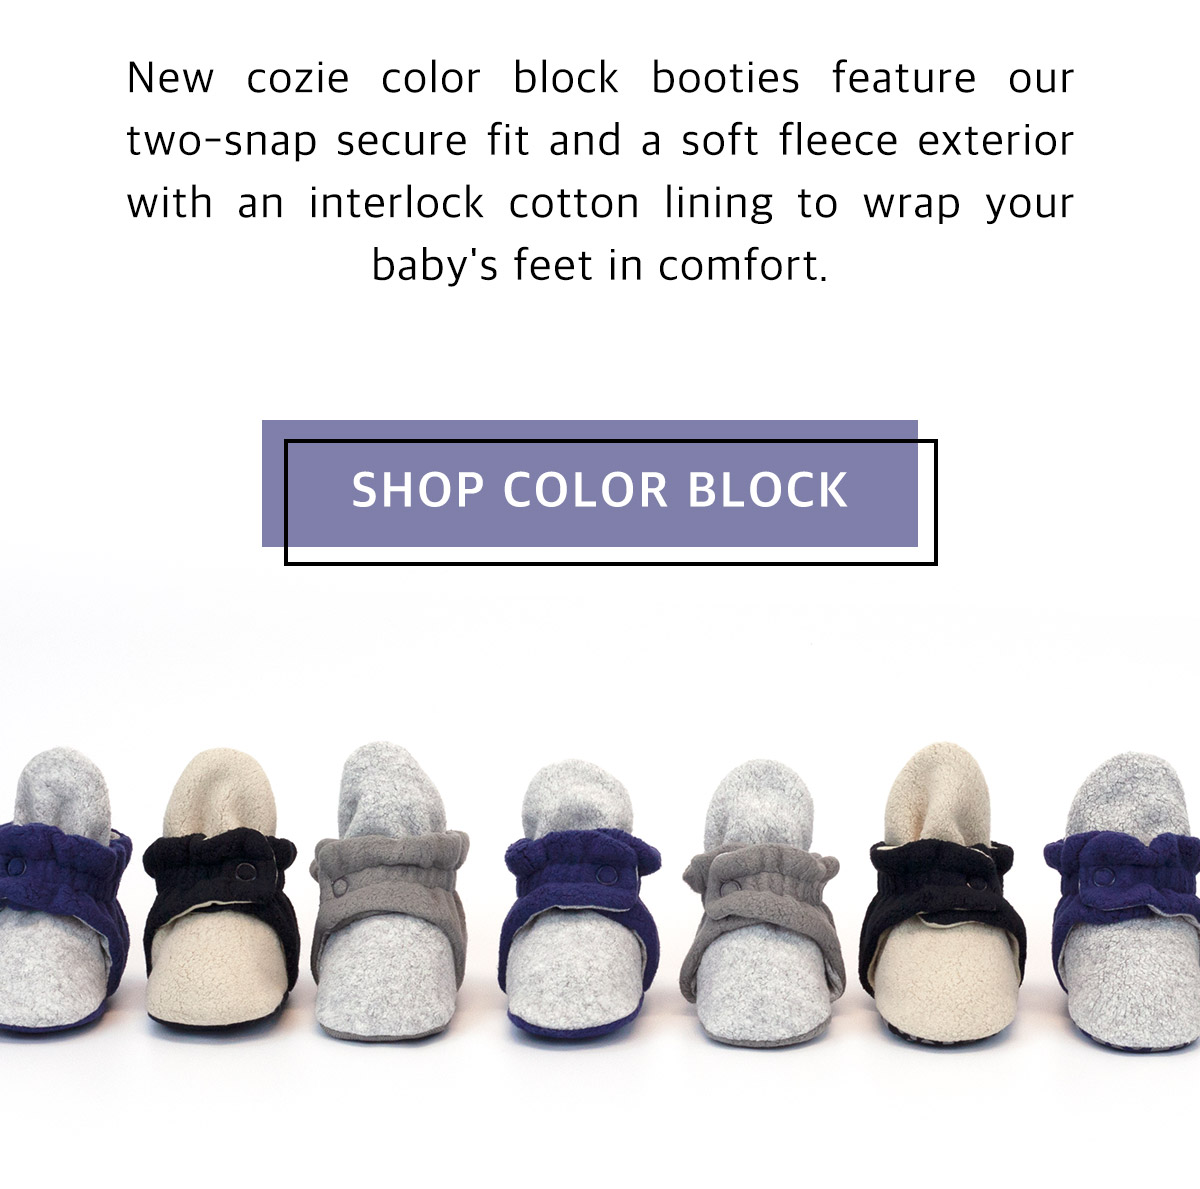 New cozie color block booties feature our two snap secure fit and ultra soft fleece lining and shell to wrap your baby's feet in comfort inside and out. Shop color block.